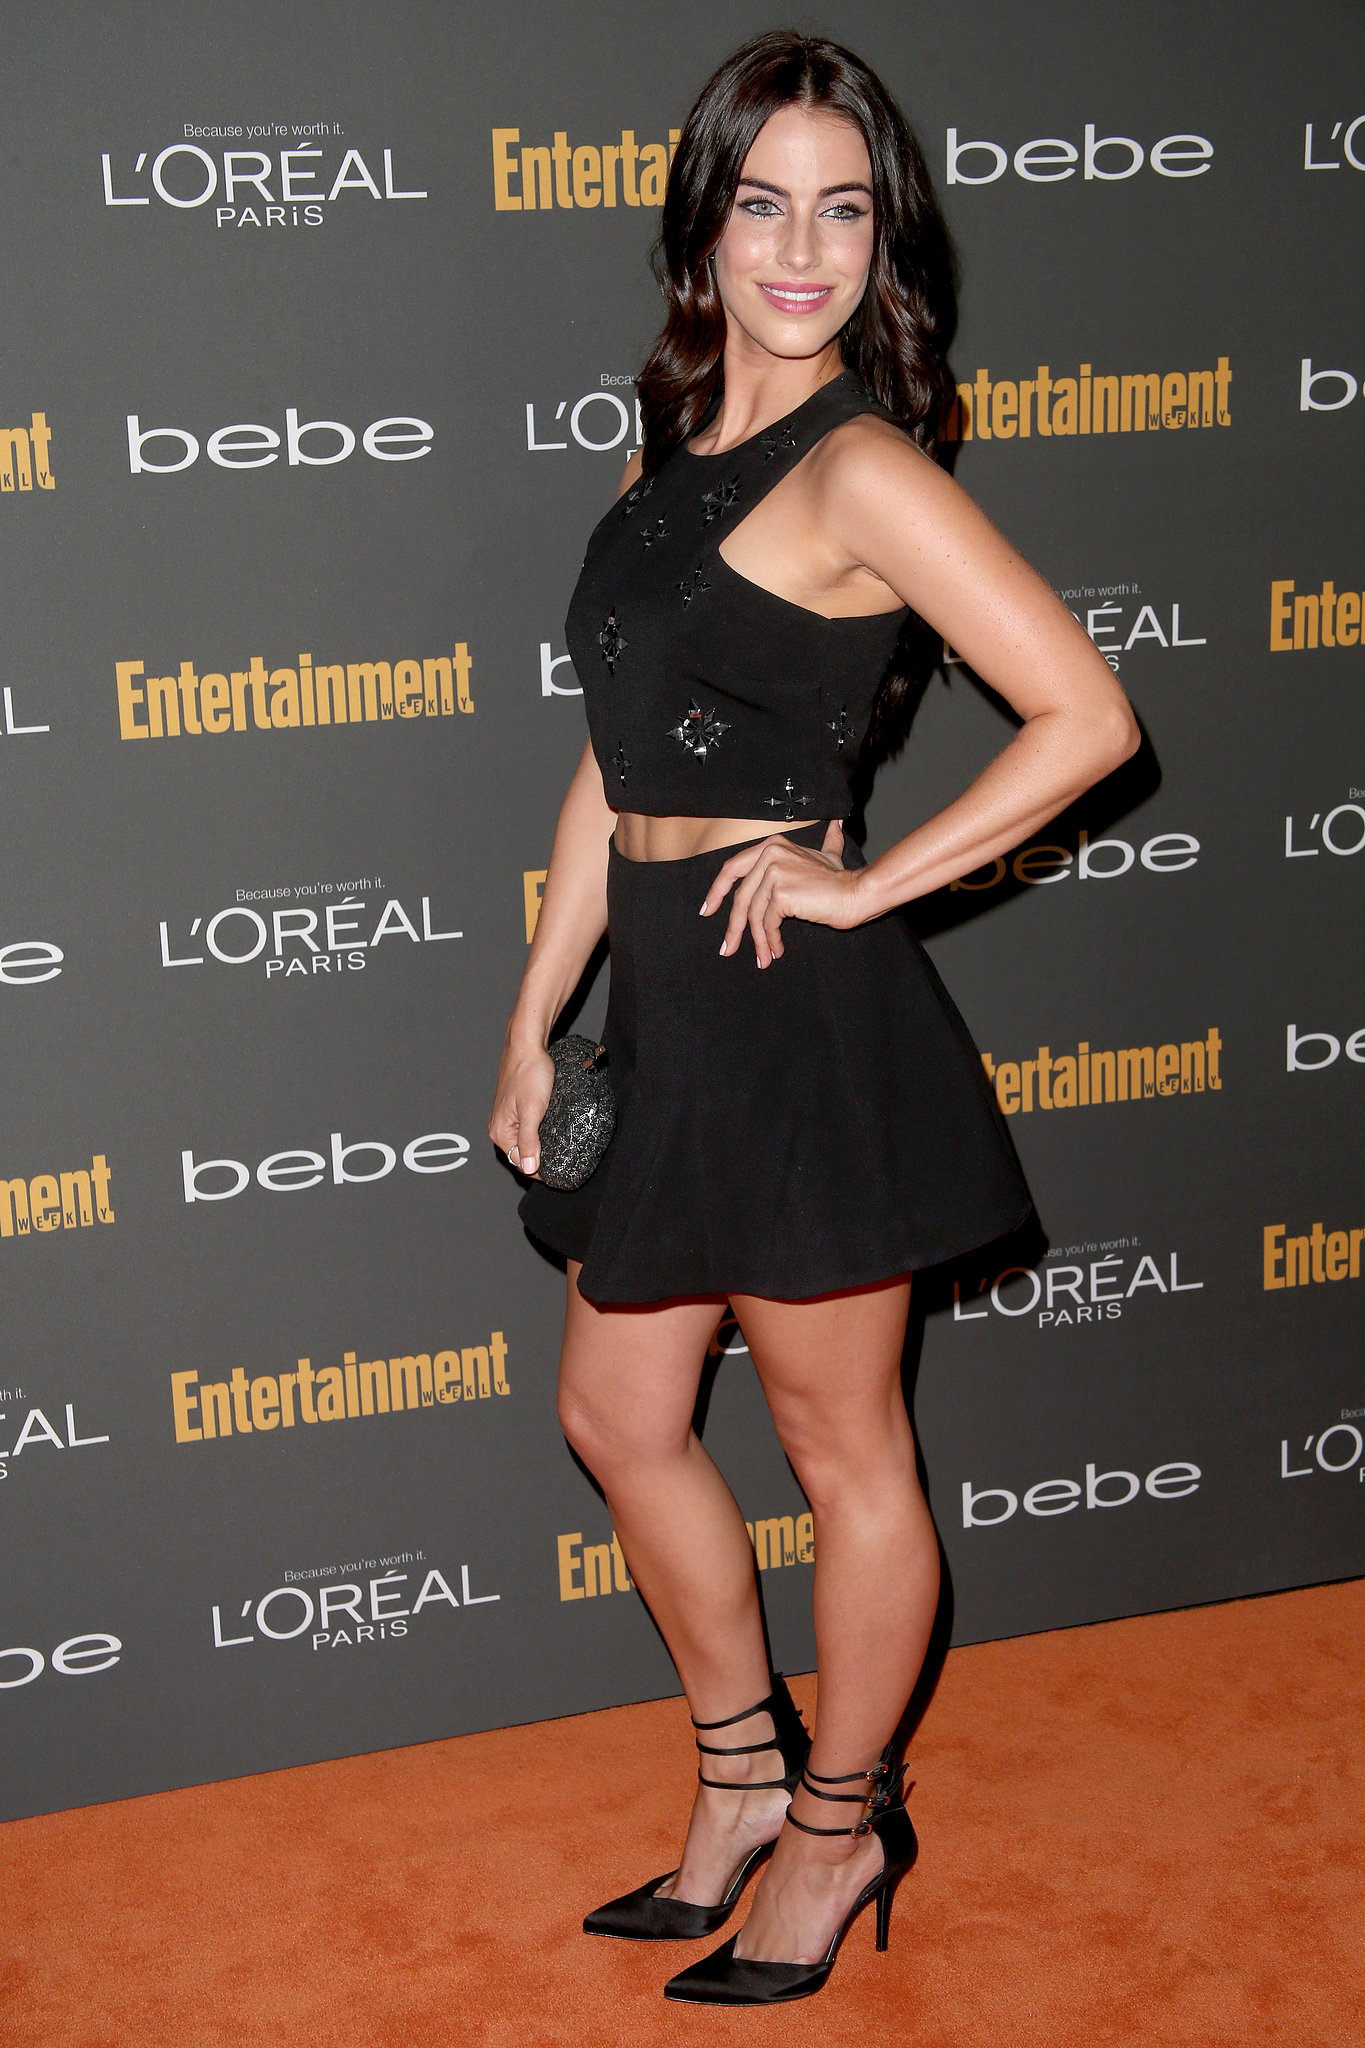 Jessica Lowndes put her midriff on display in a black crop top and a black miniskirt at the pre-Emmys bash.